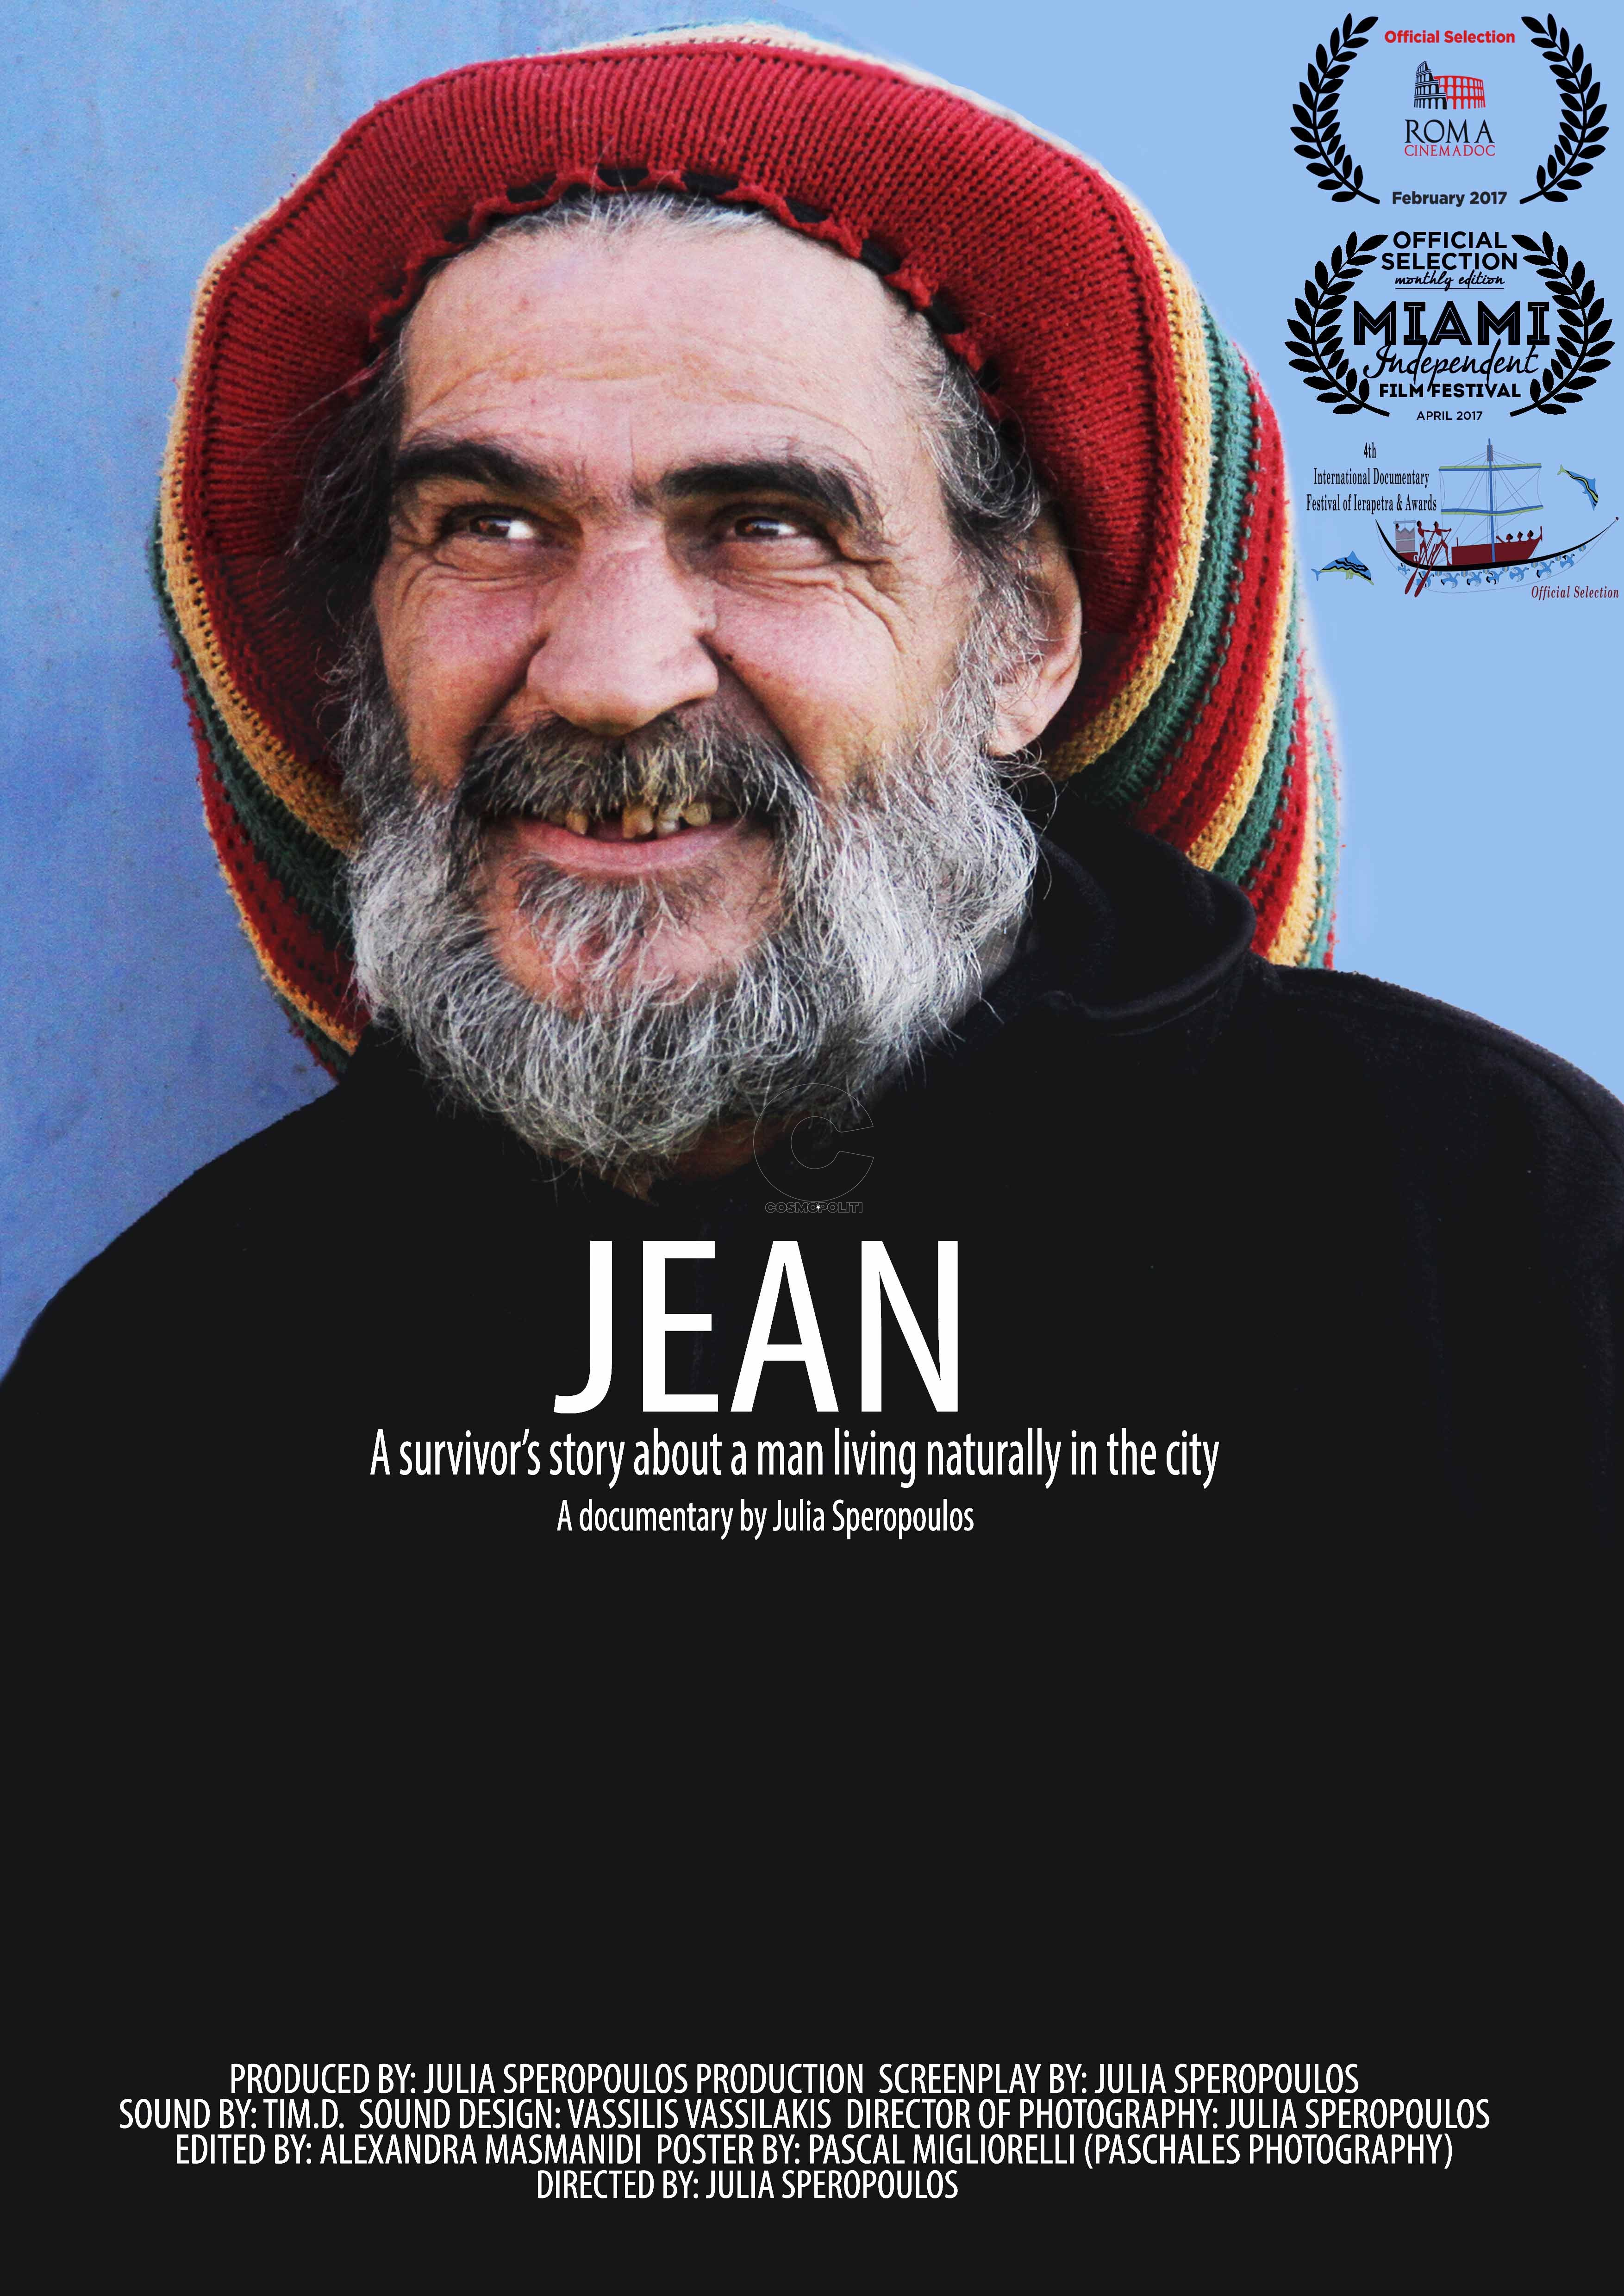 jean poster new.LOW